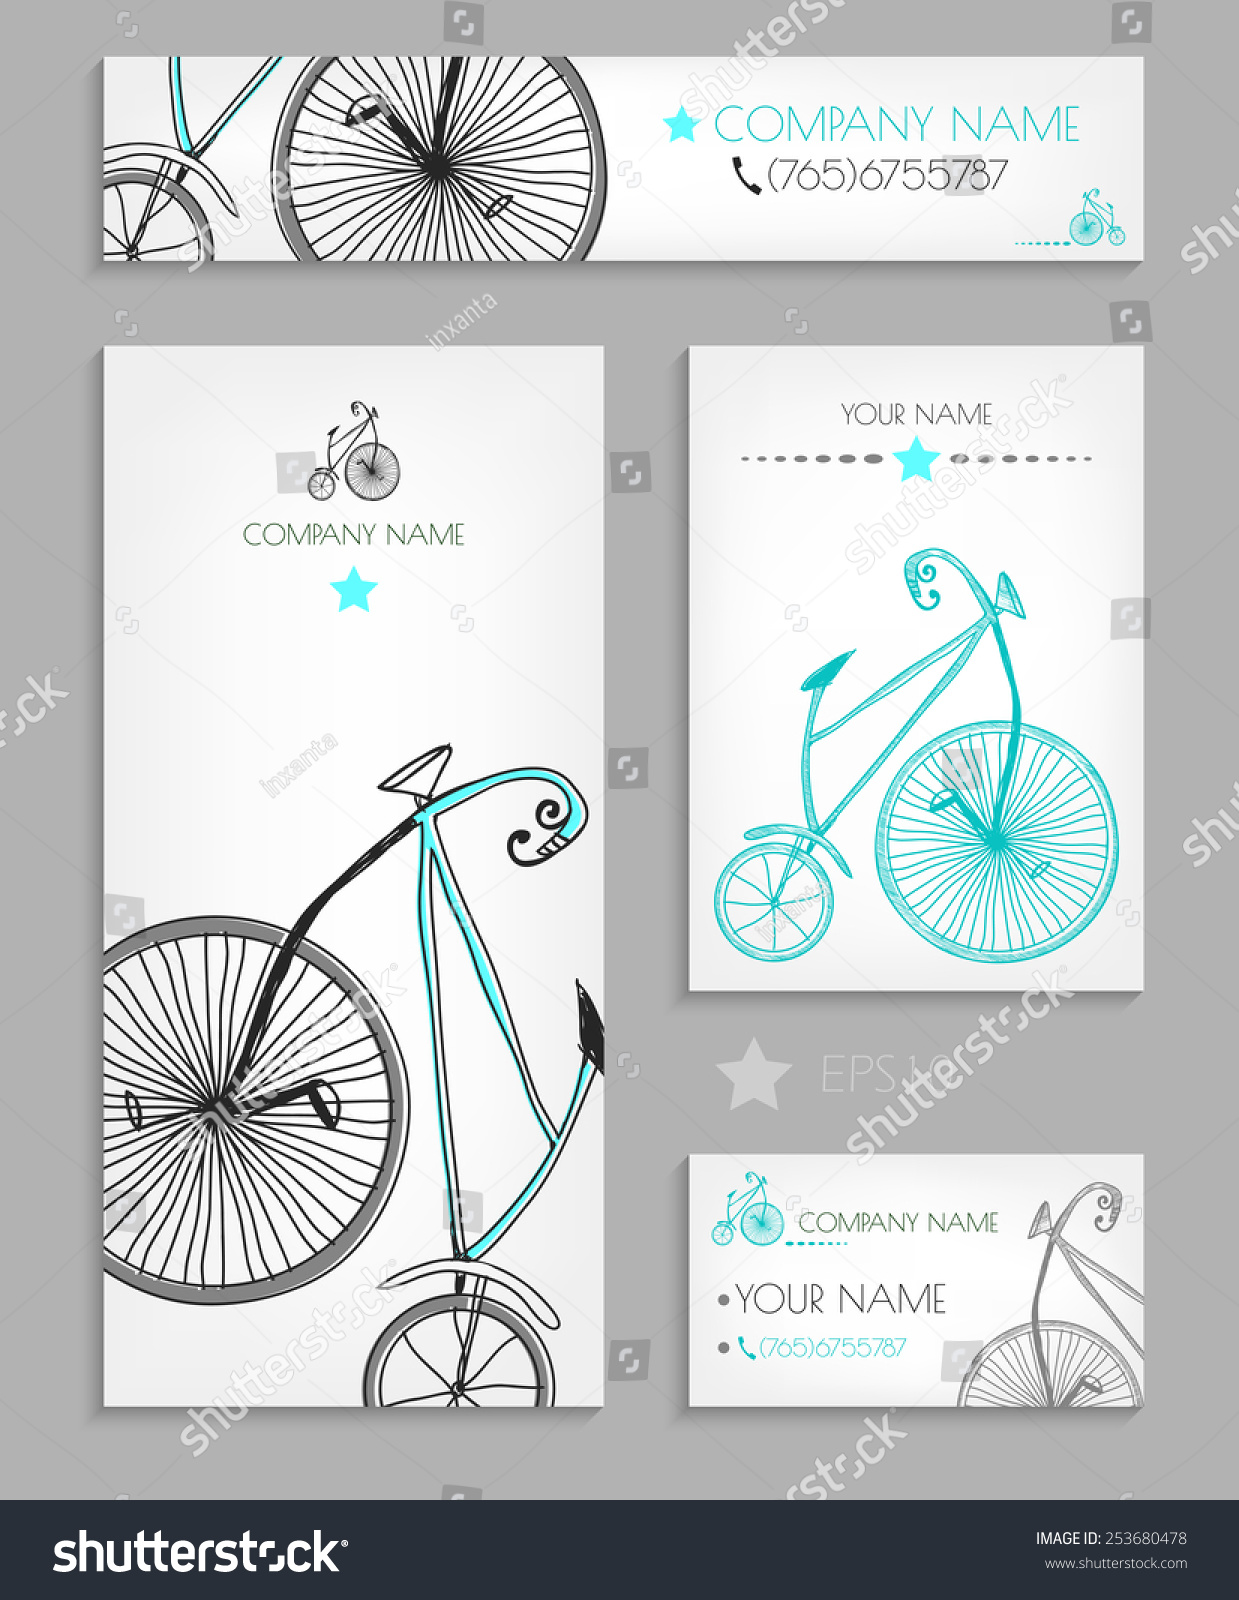 Vintage Bicycle Business Cards Images - Card Design And Card Template